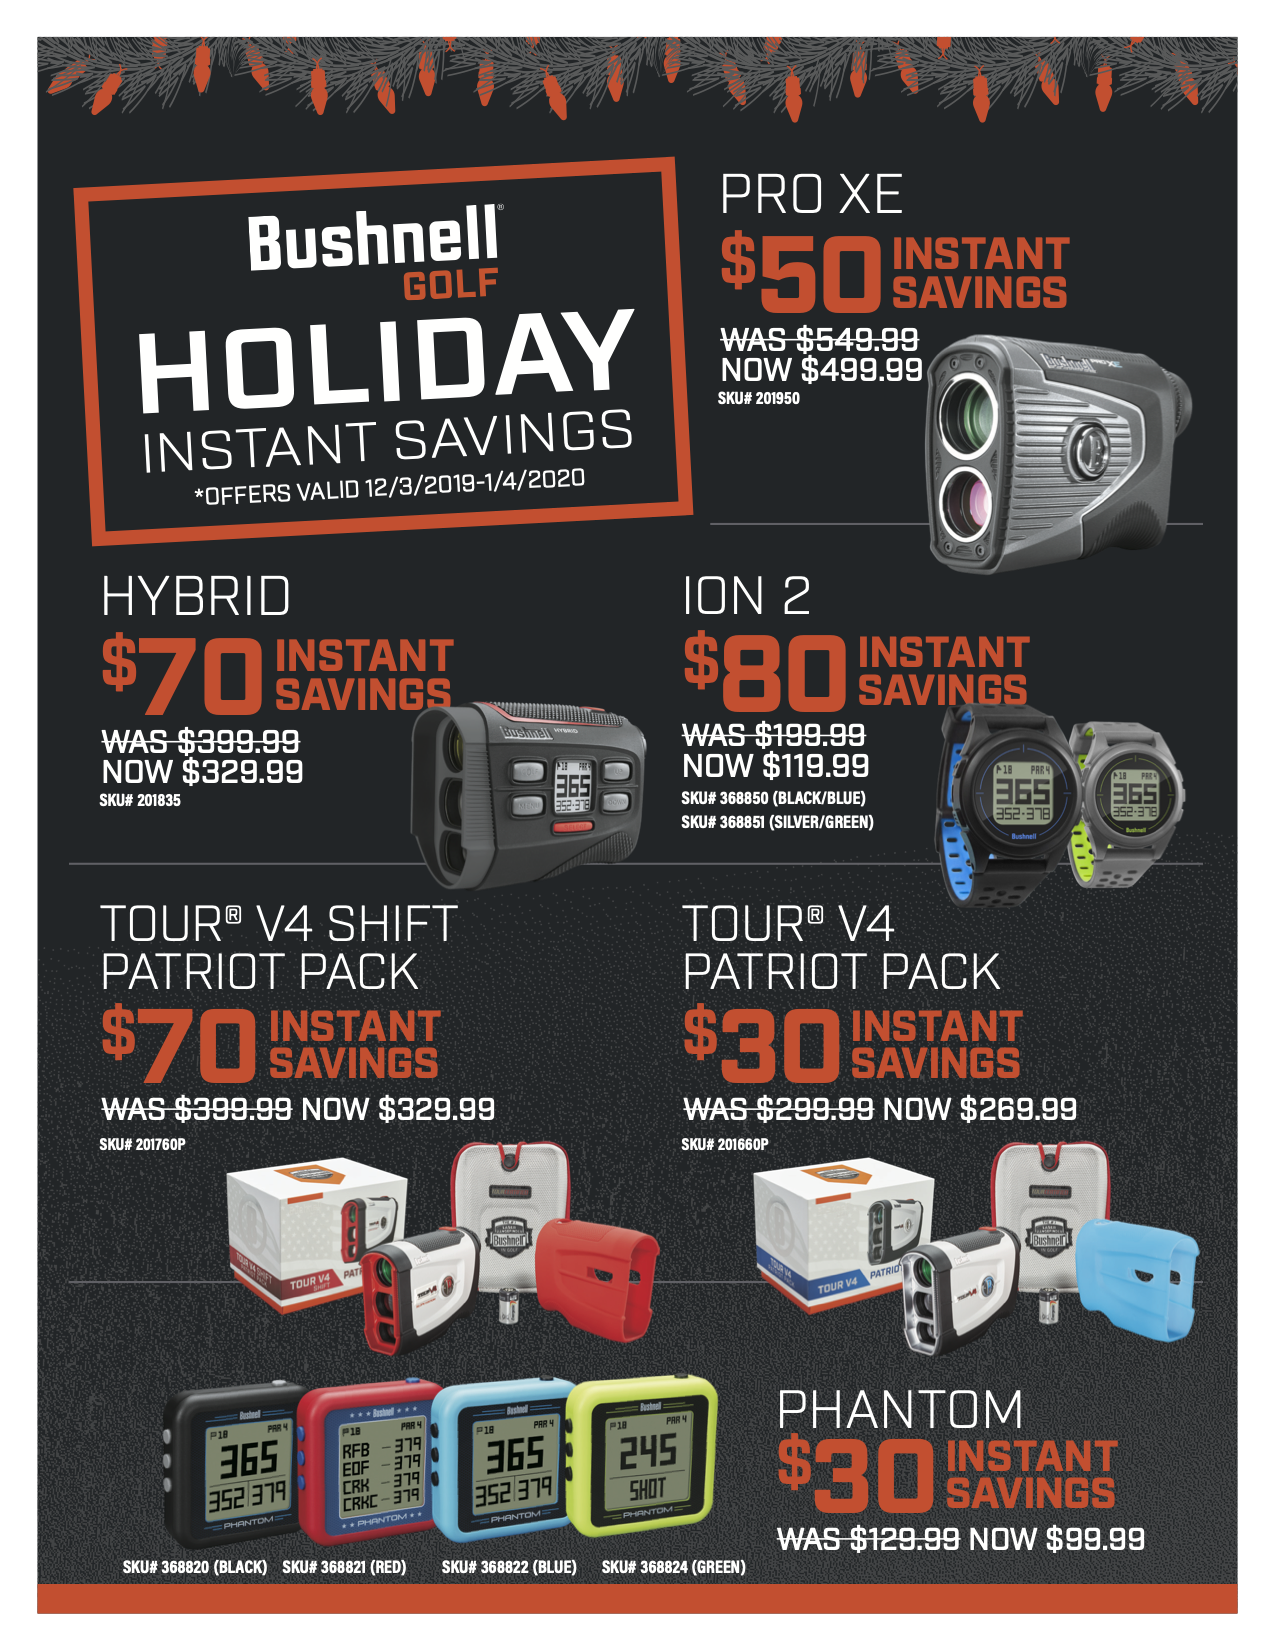 2019-bushnellgolf-holiday-savings-promo-8.5x11.png